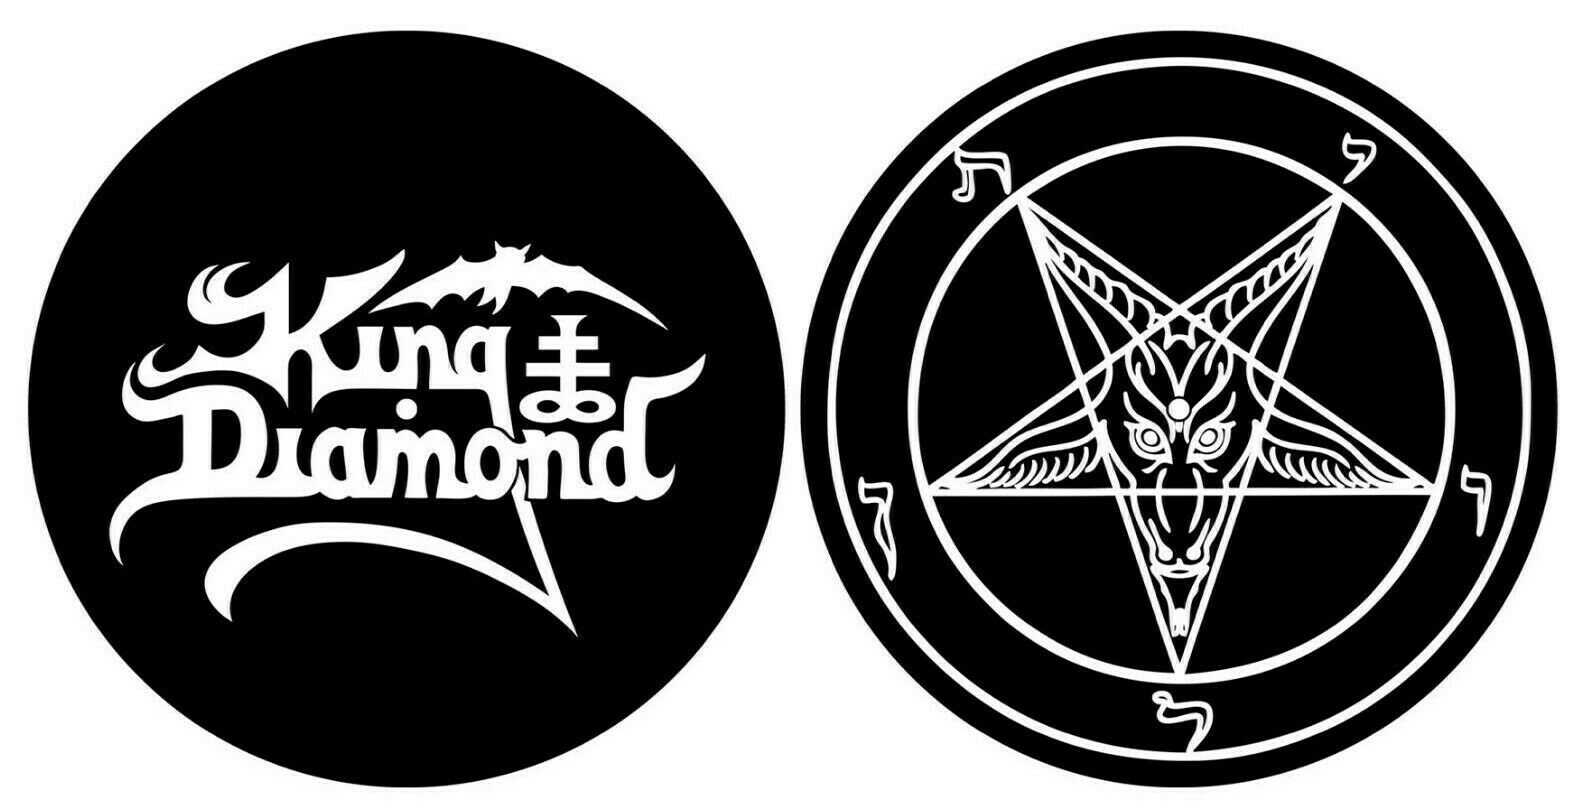 KING DIAMOND DJ SLIPMAT FILZMATTE LOGO PENTAGRAM - 2er SET